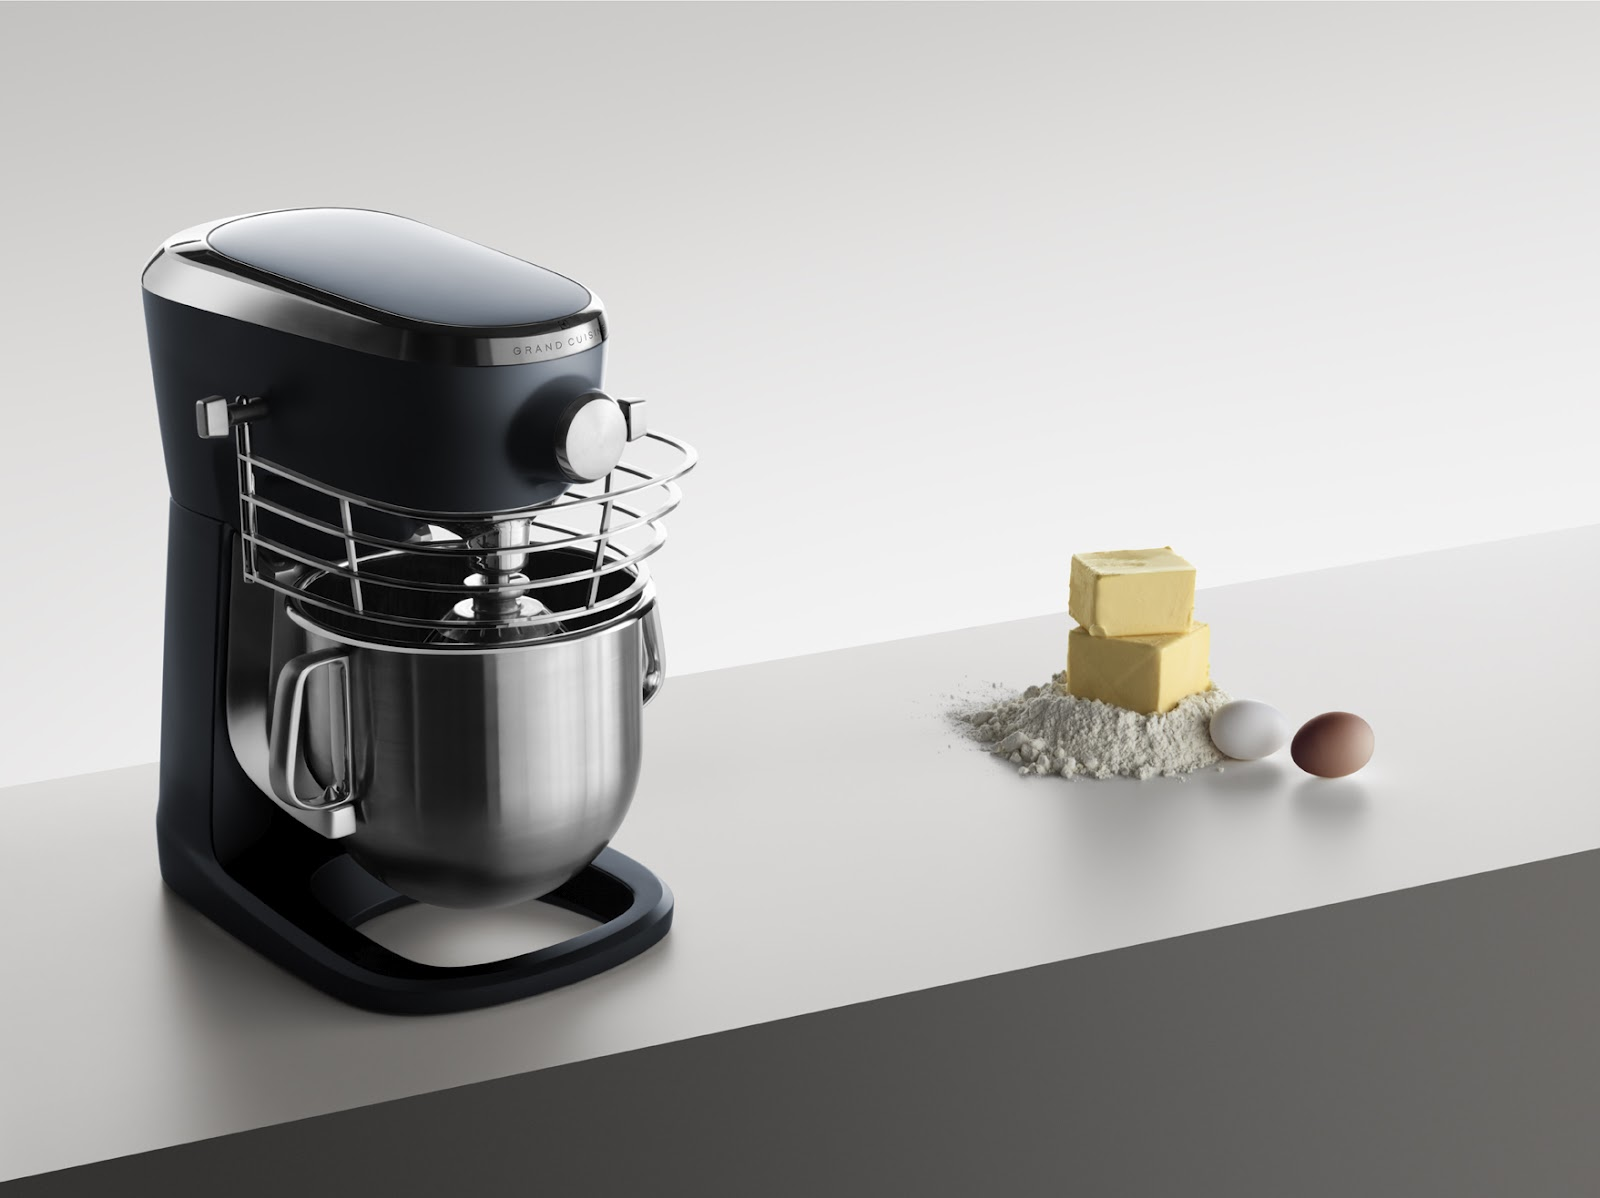 Electrolux Grand Cuisine Professional Kitchen Food Network